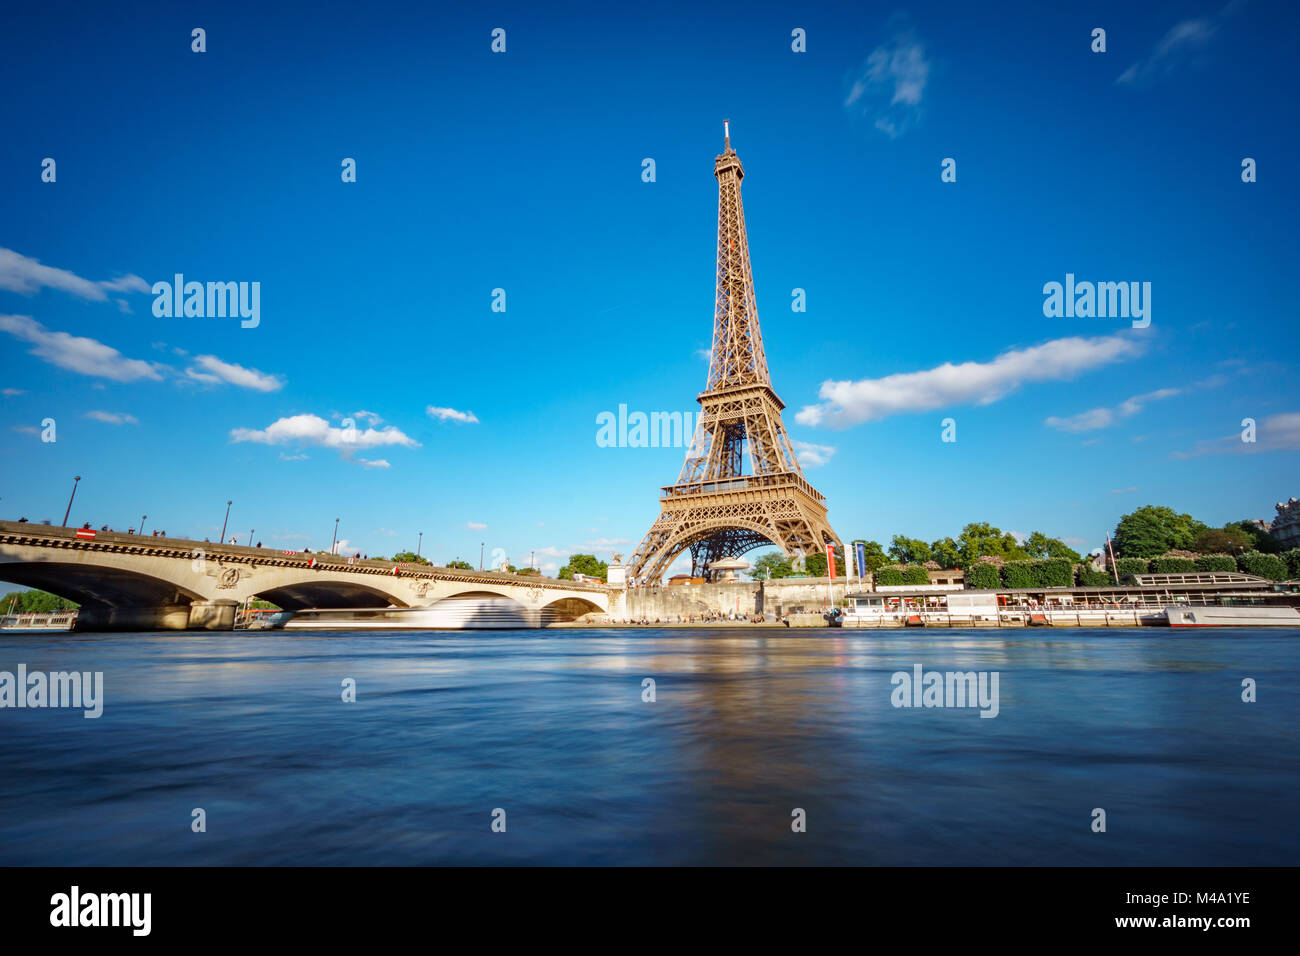 Eiffel tower and Seine river long exposure - Stock Image